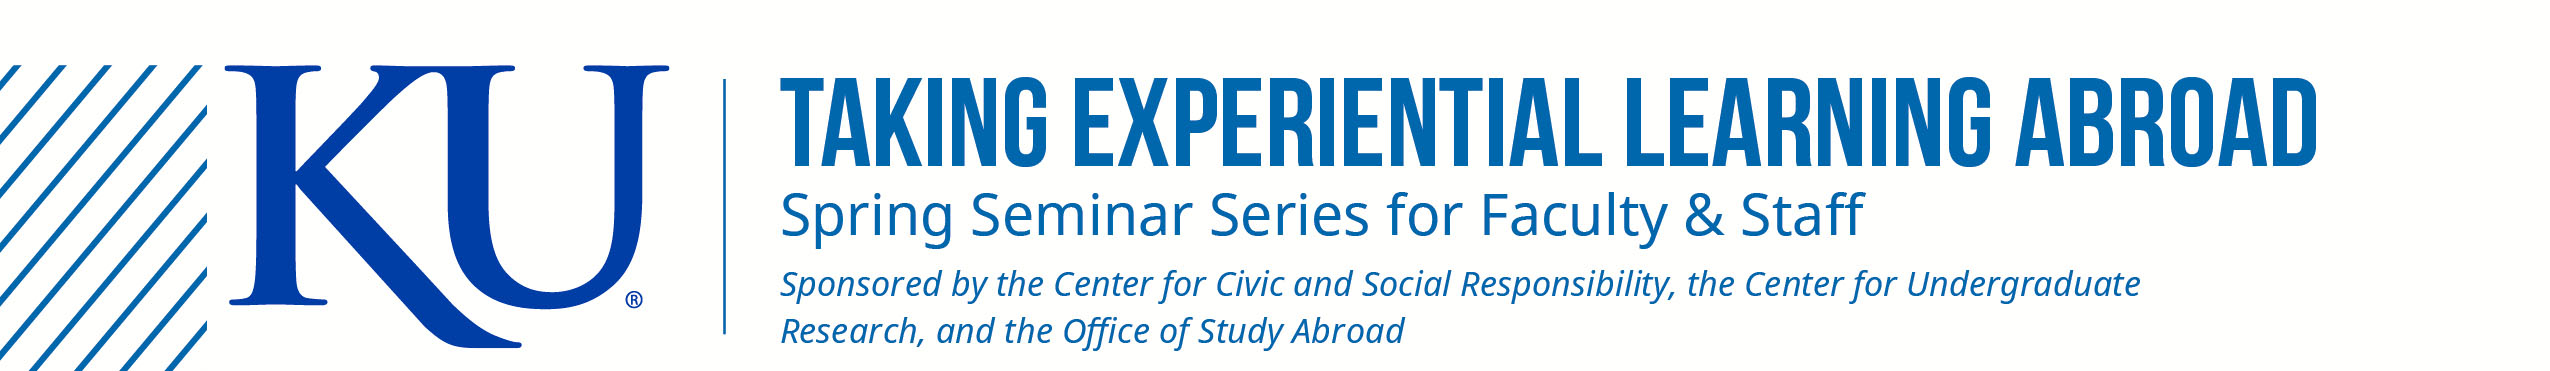 Taking Experiential Learning Abroad. Spring Seminar Series for Faculty.